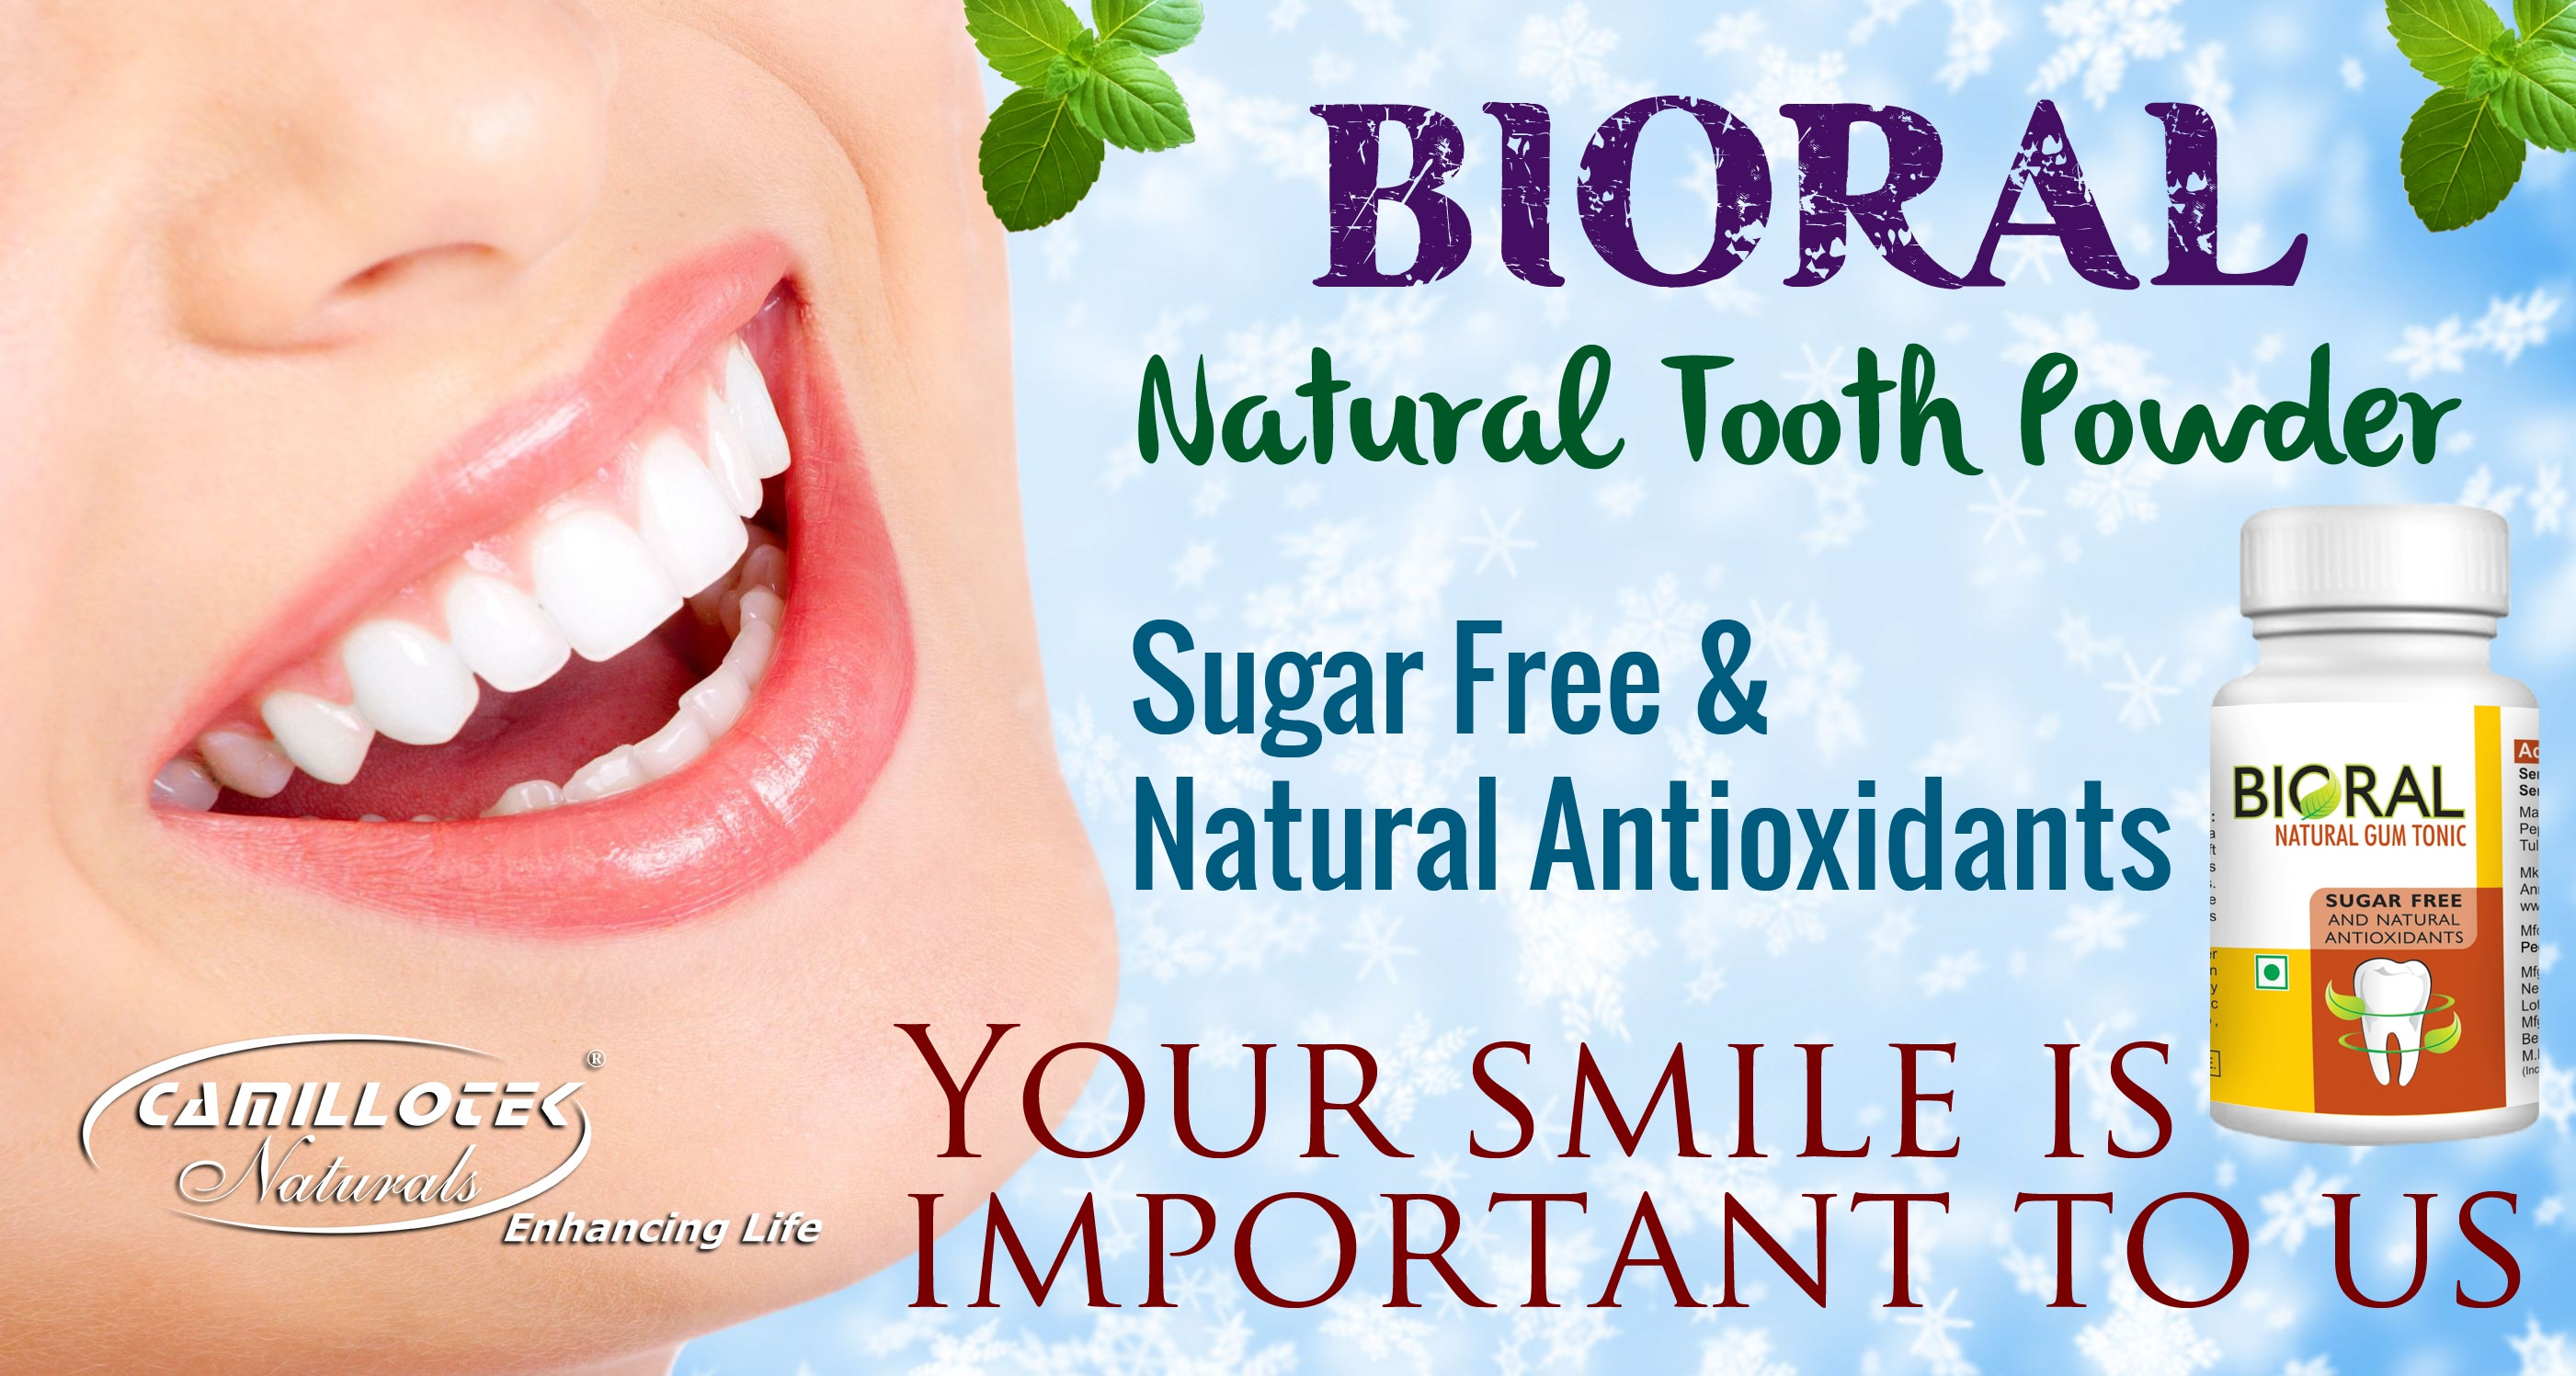 BIORAL NATURAL TOOTH POWDER  100% Natural Gum Care Sugar Free & Natural Antioxidants  Prevents Tooth decay. Astringent and Cleansing. Anti-Inflammatory and Analgesic. Anti-Bacterial, Anti Caries Combats Bad Breath. Bio Absorption & Desensitization.  DIRECTIONS: Take 2gms (Half a teaspoon) of the powder in a soft brush and gently rub it over the gums and teeth 2-3 times daily after meals.